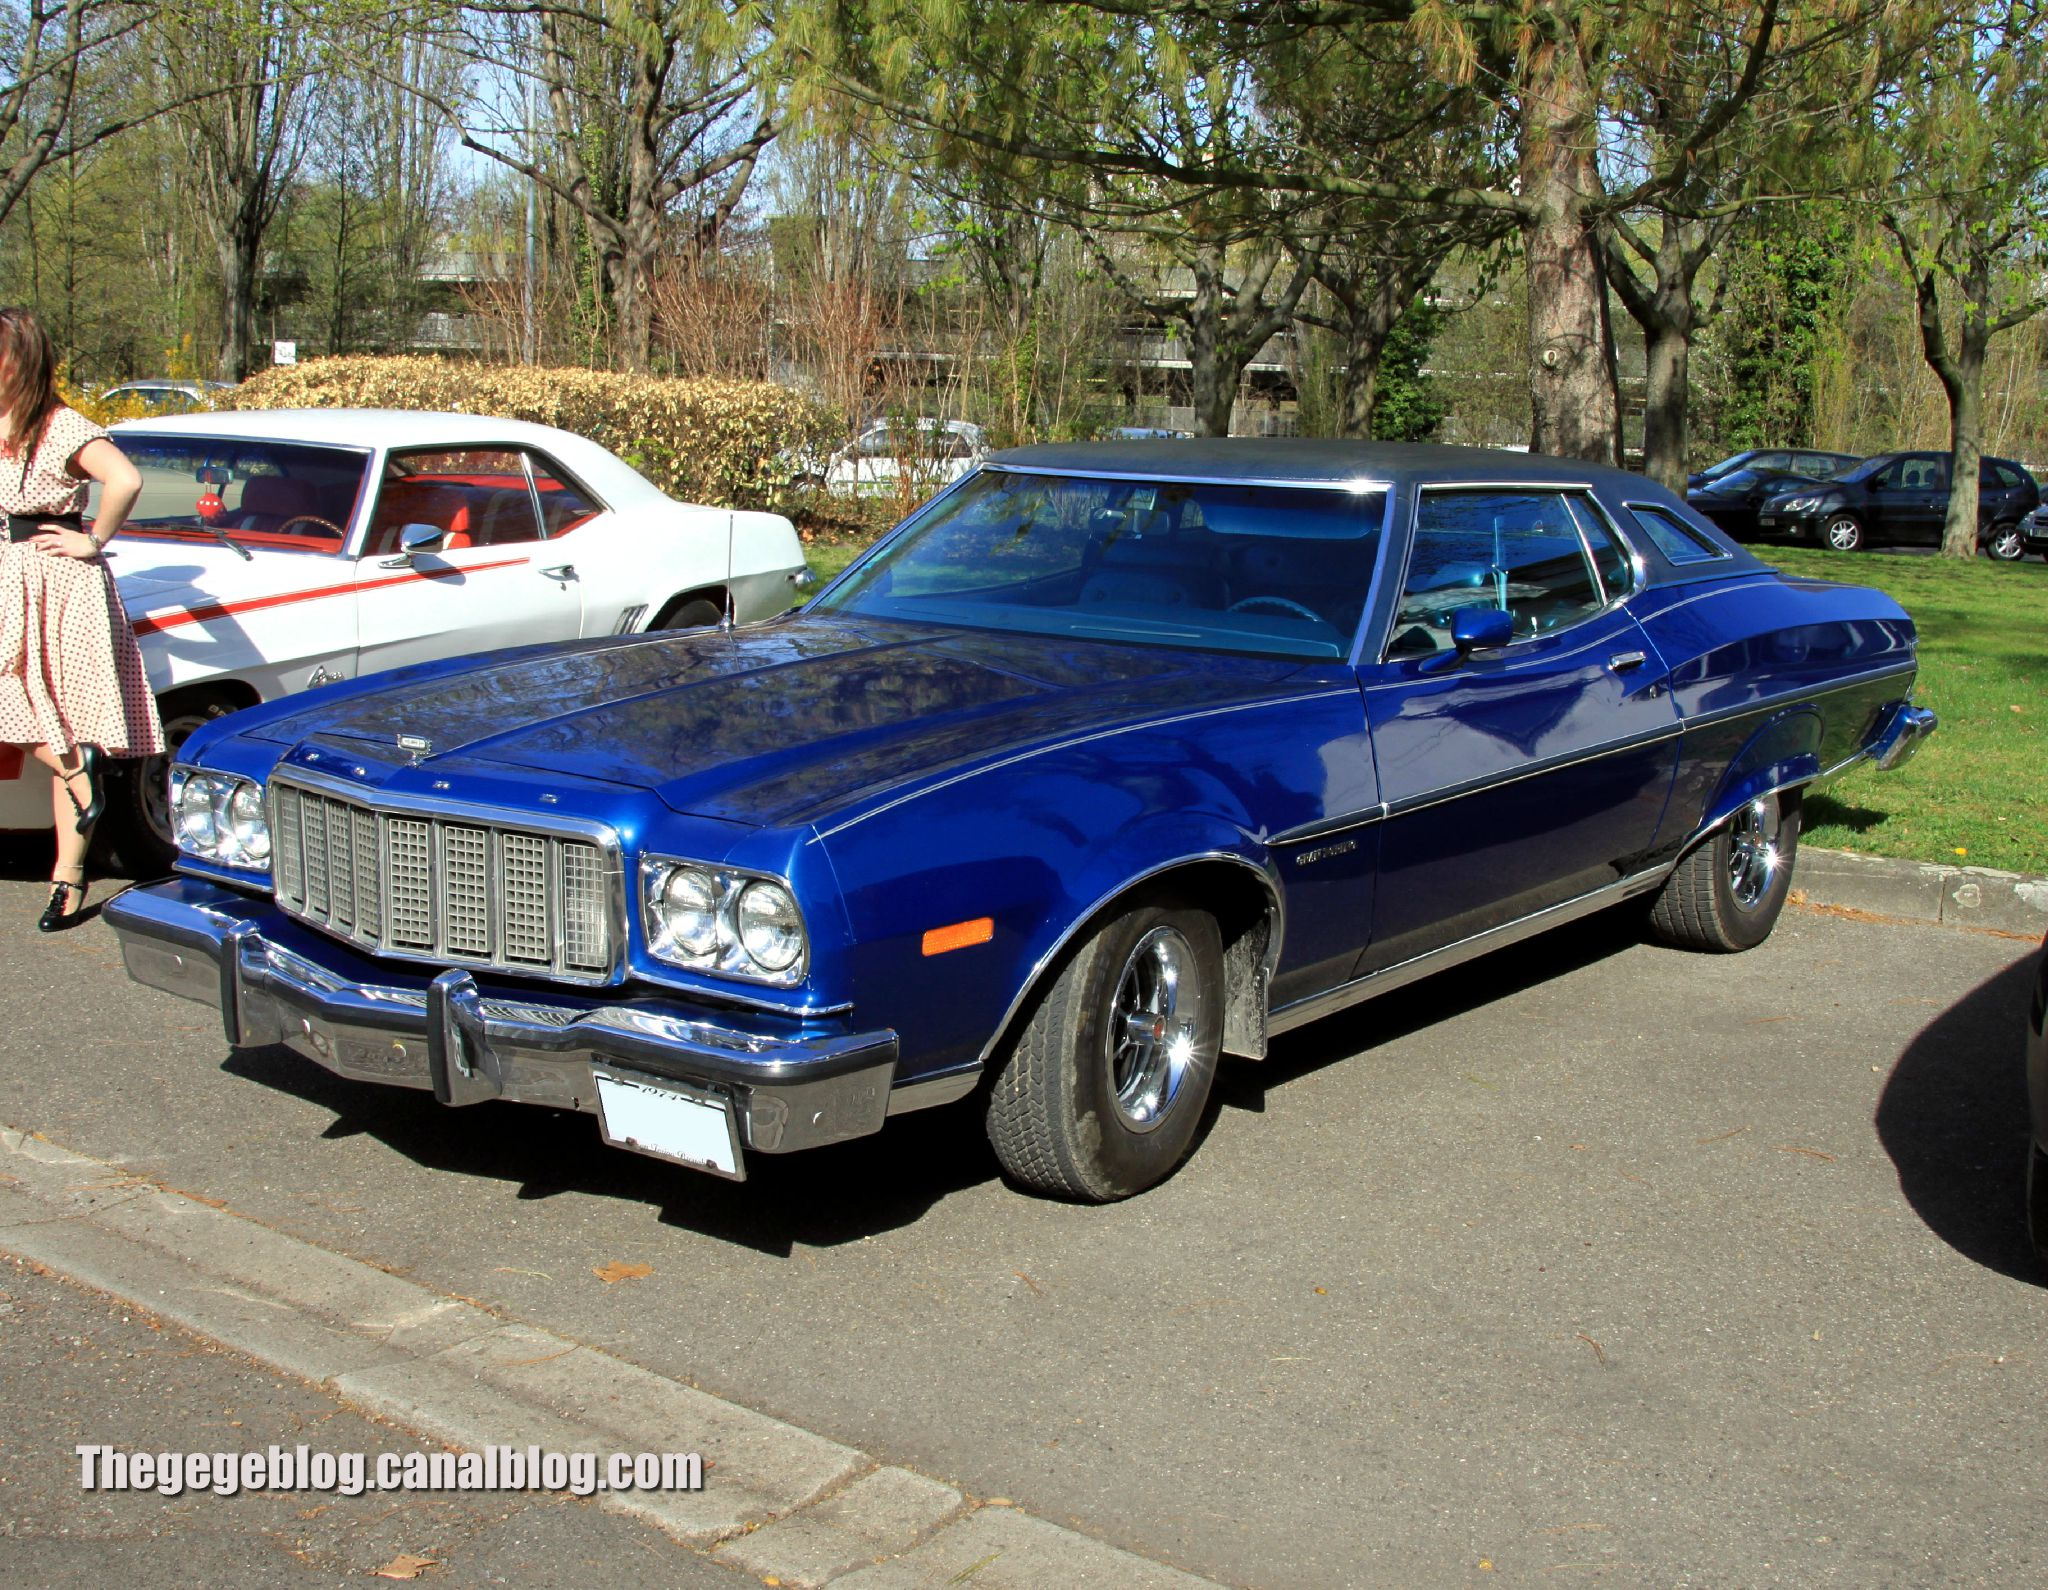 la ford gran torino hardtop coupe 1974 retrorencard avril 2012 the g g blog. Black Bedroom Furniture Sets. Home Design Ideas